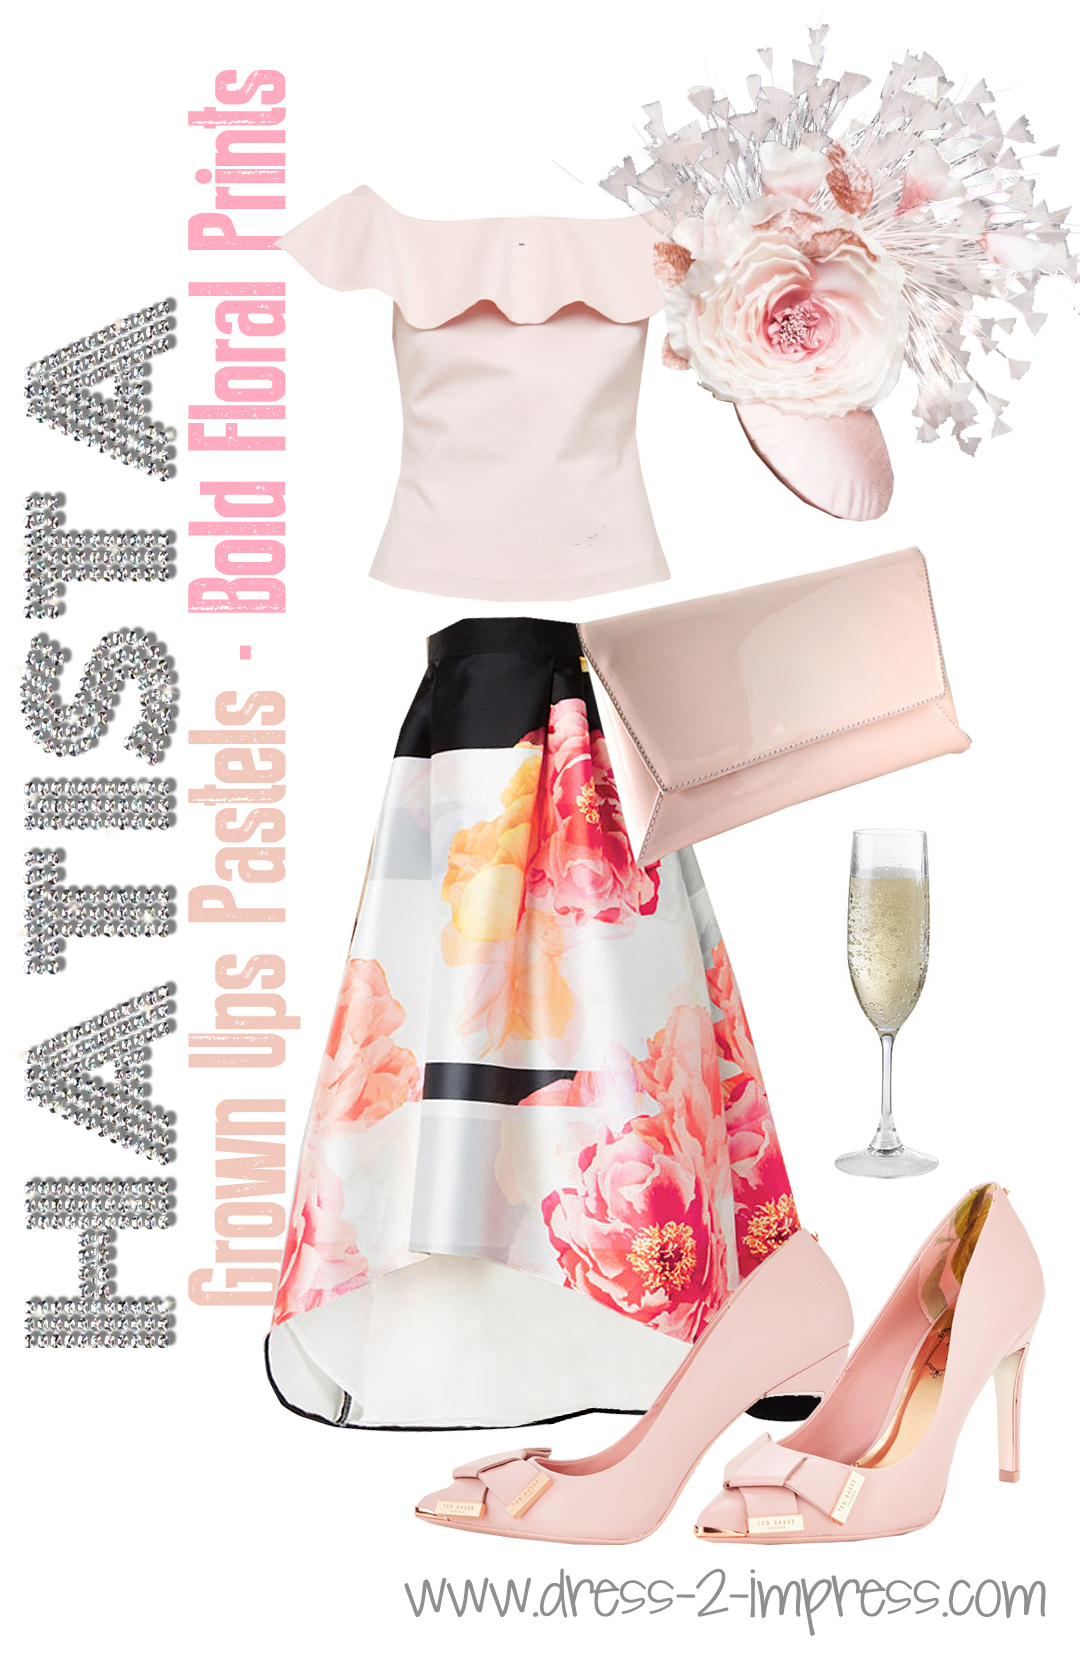 What to wear with pink. Pastel Outfits. What to wear for Kentucky Derby. What to wear for summer wedding. What to wear to the Races. What to wear for Royal Ascot. Tips on Wearing Pink from THE HATISTA www.dress-2-impress.com #wearpink #fashionista #pink #outfitideas